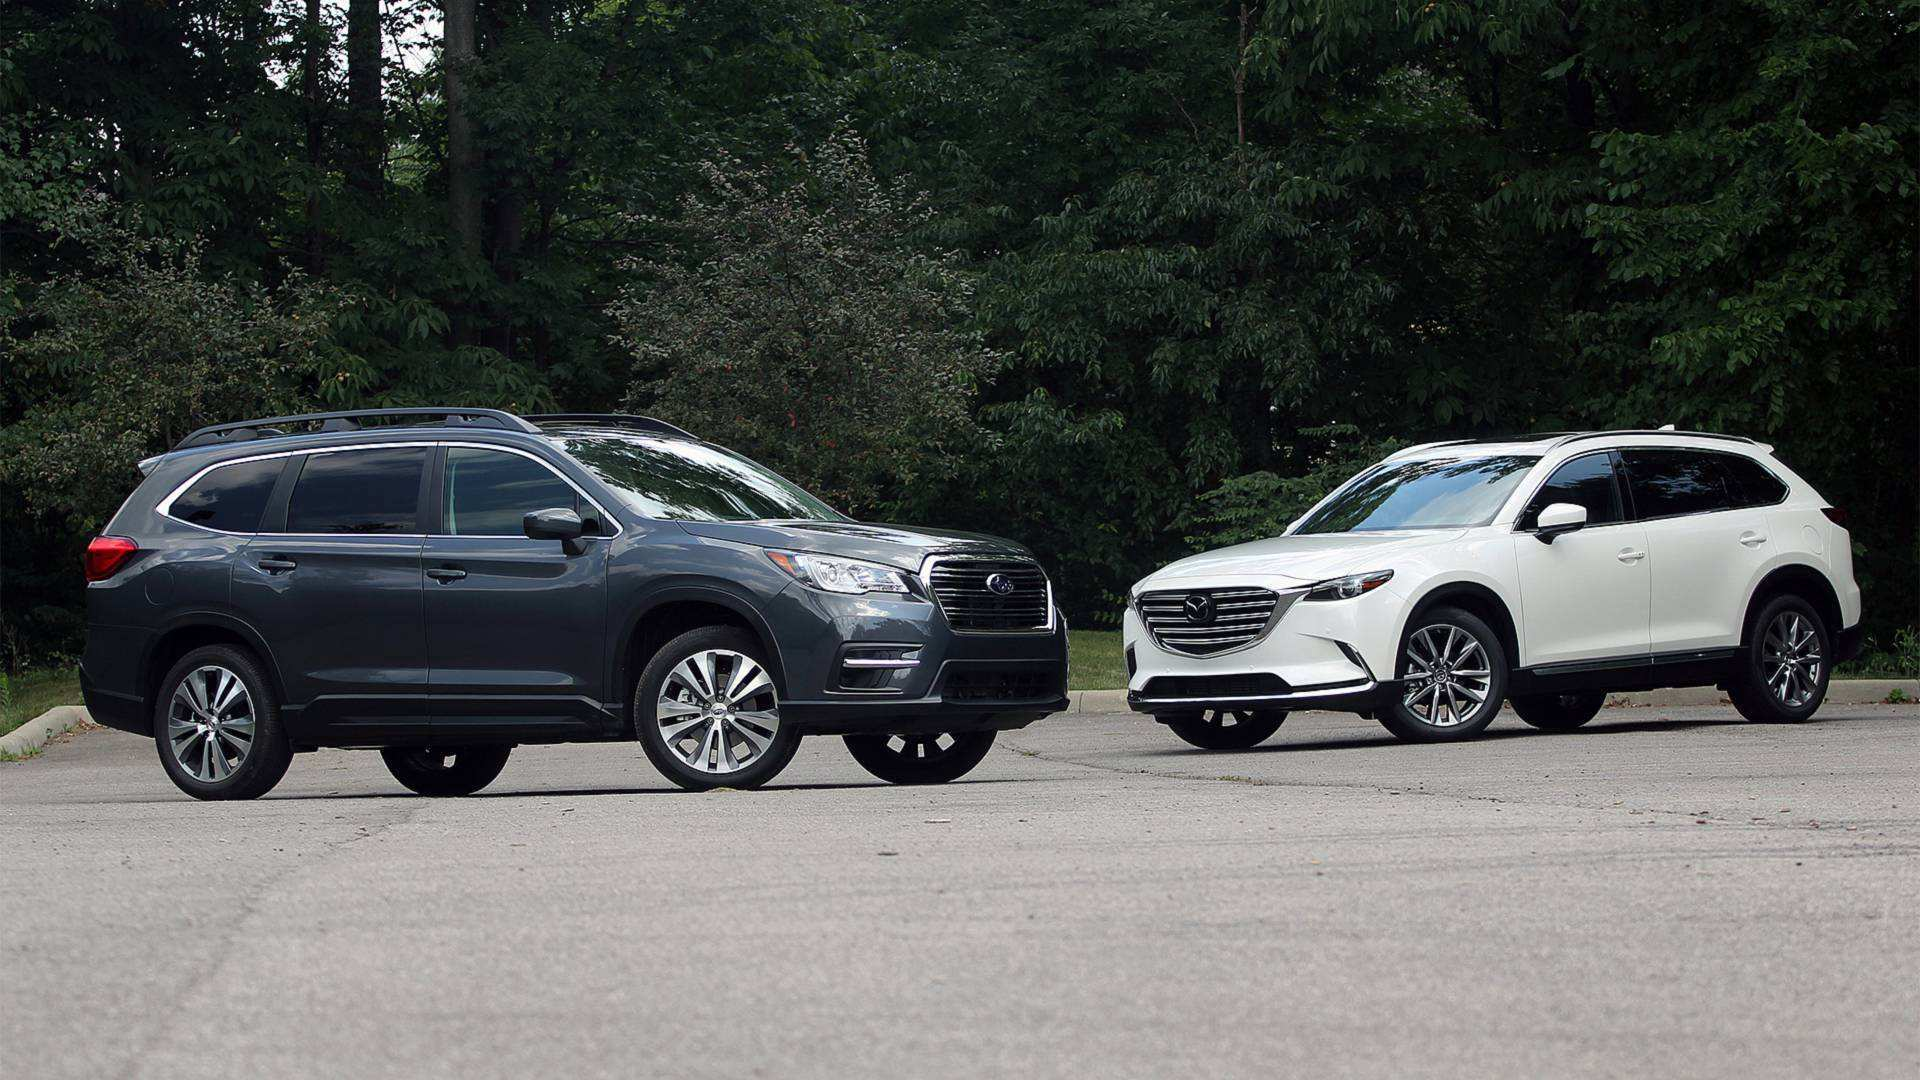 98 Great 2020 Subaru Ascent Ground Clearance Exterior for 2020 Subaru Ascent Ground Clearance